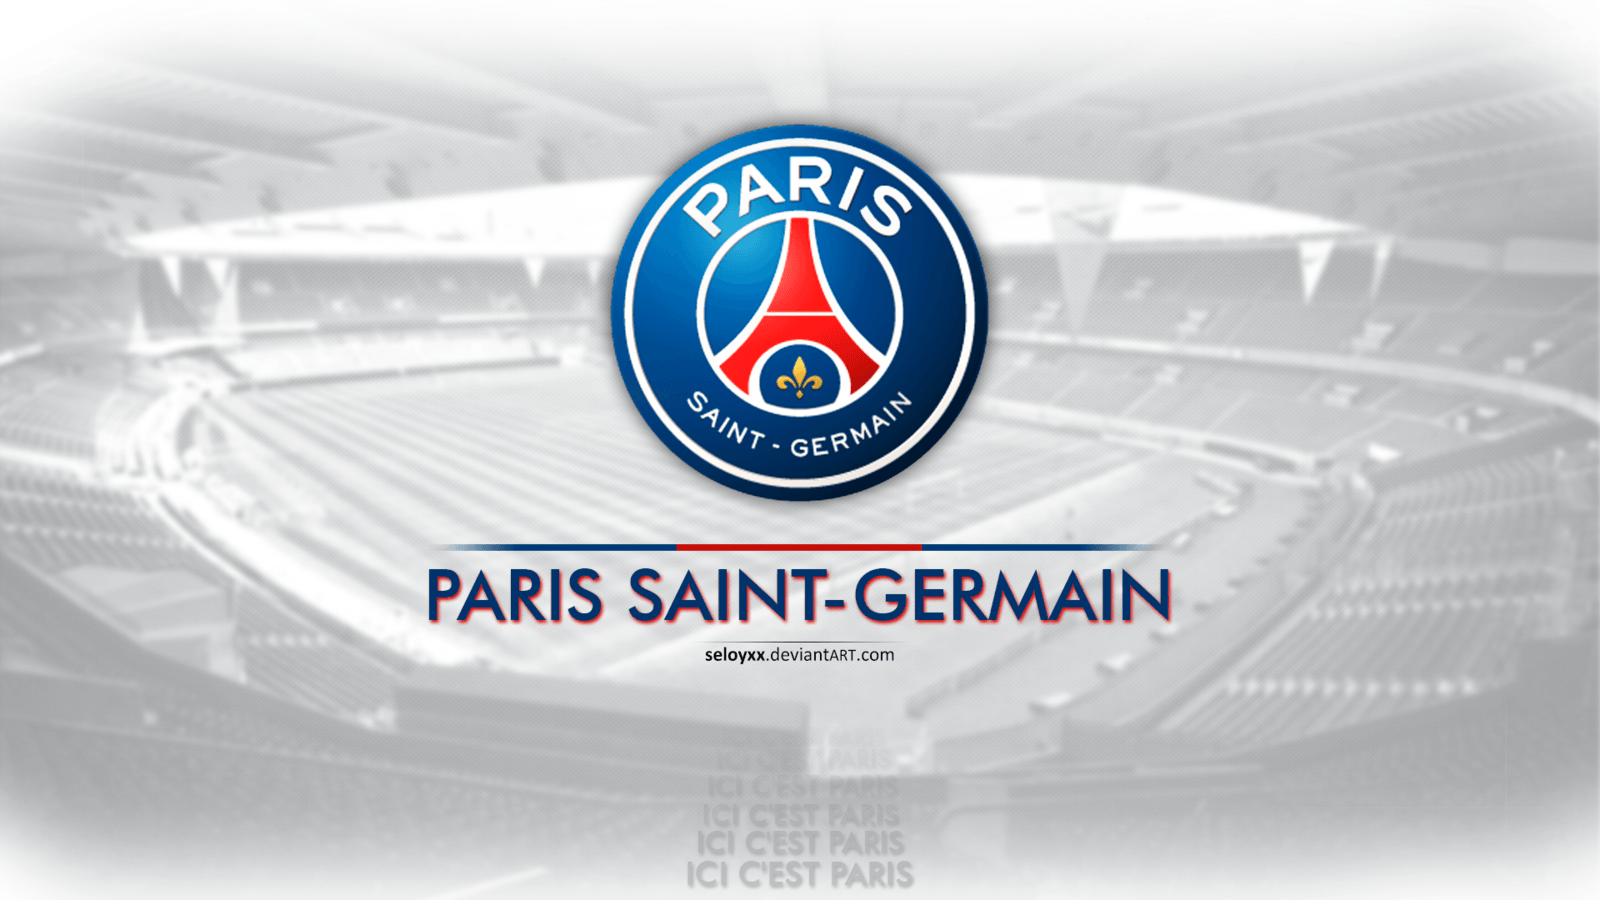 Paris Saint-Germain wallpaper by seloyxx on DeviantArt